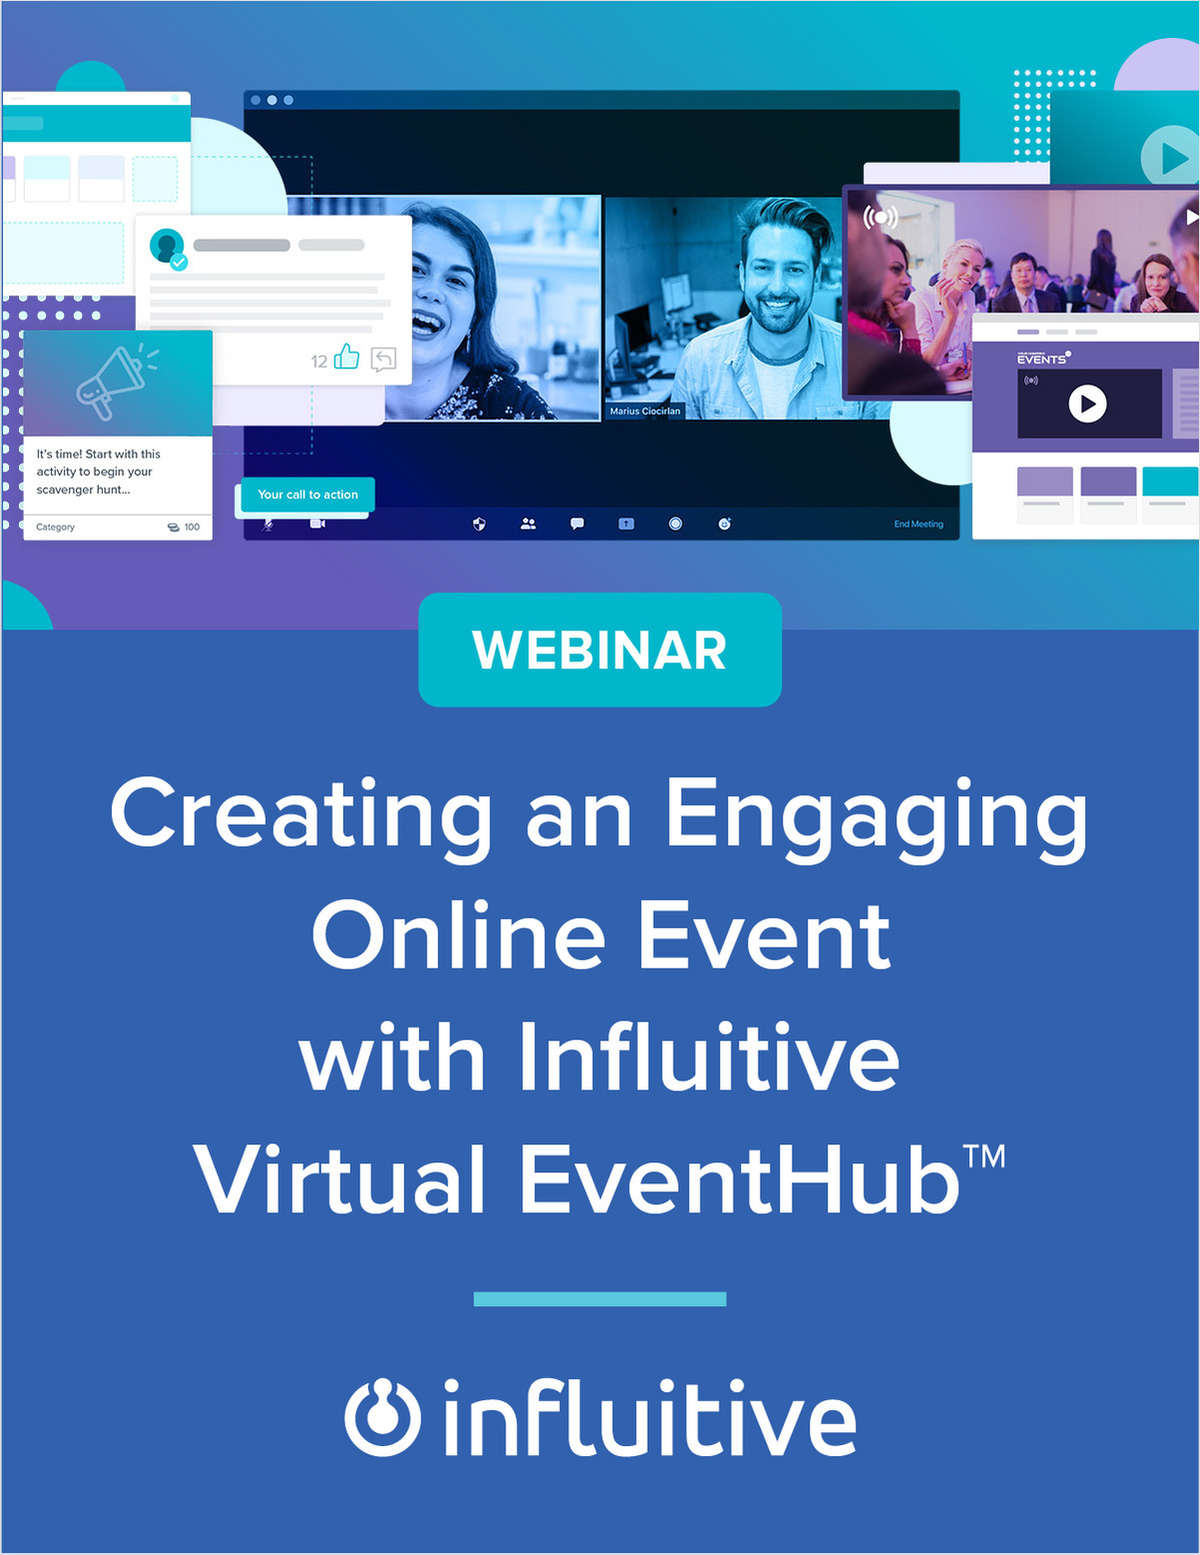 Creating an Engaging Online Event with Influitive Virtual EventHub